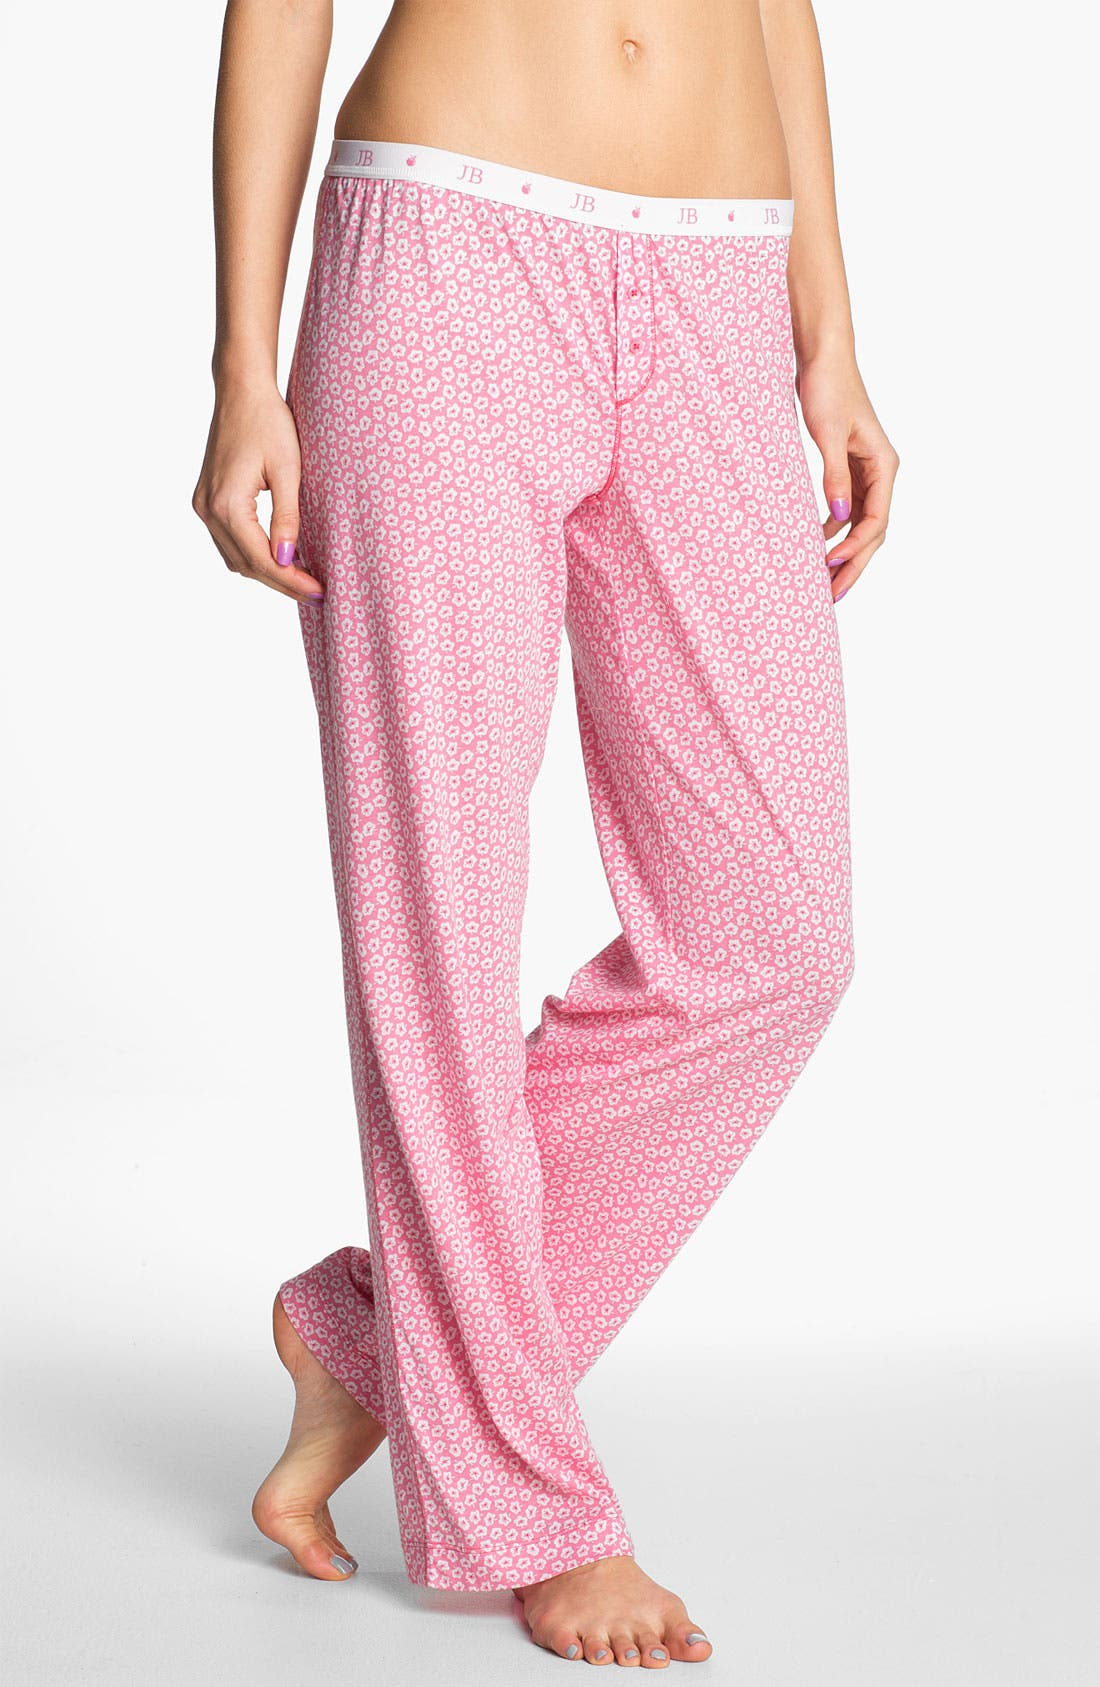 Alternate Image 1 Selected - Jane & Bleecker New York 'Jane B' Knit Lounge Pants